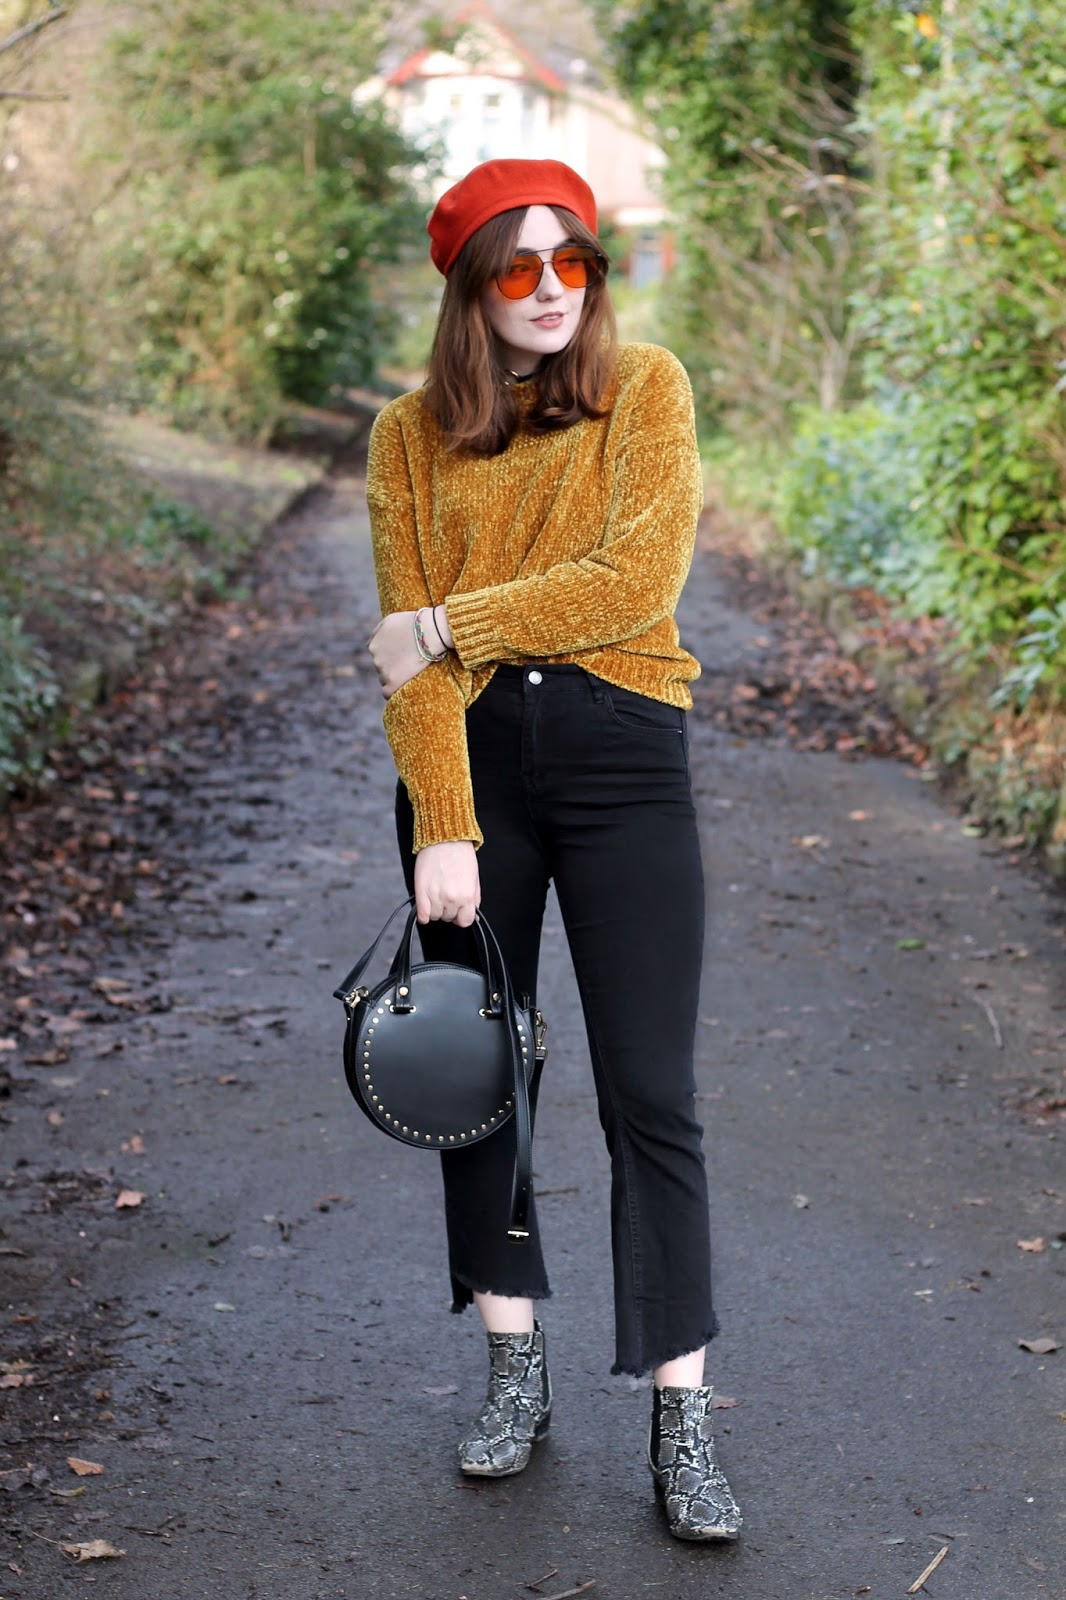 mustard chenille jumper, orange beret and 70s sunglasses, black round topshop bag, black kick flare jeans and snake print boots on Liverpool fashion blogger